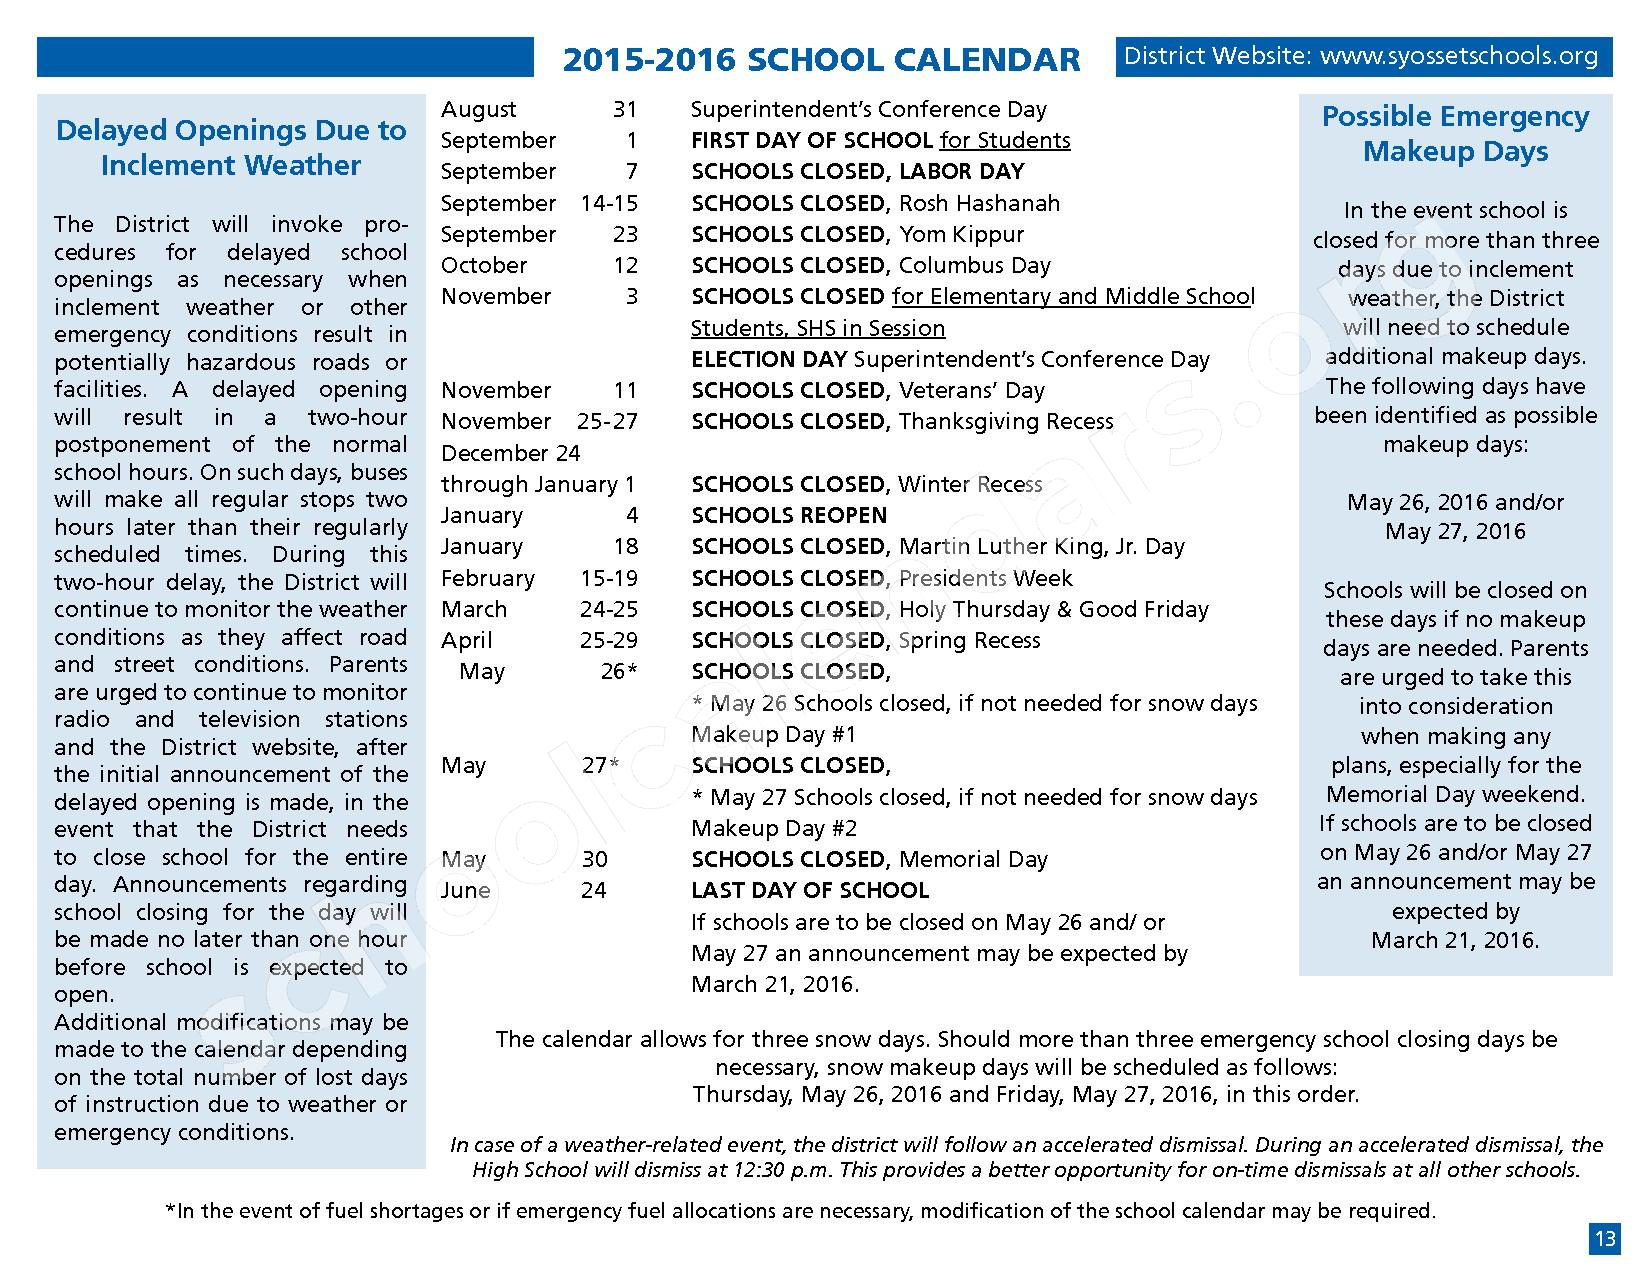 2015 - 2016 District Calendar – Syosset Central School District – page 15